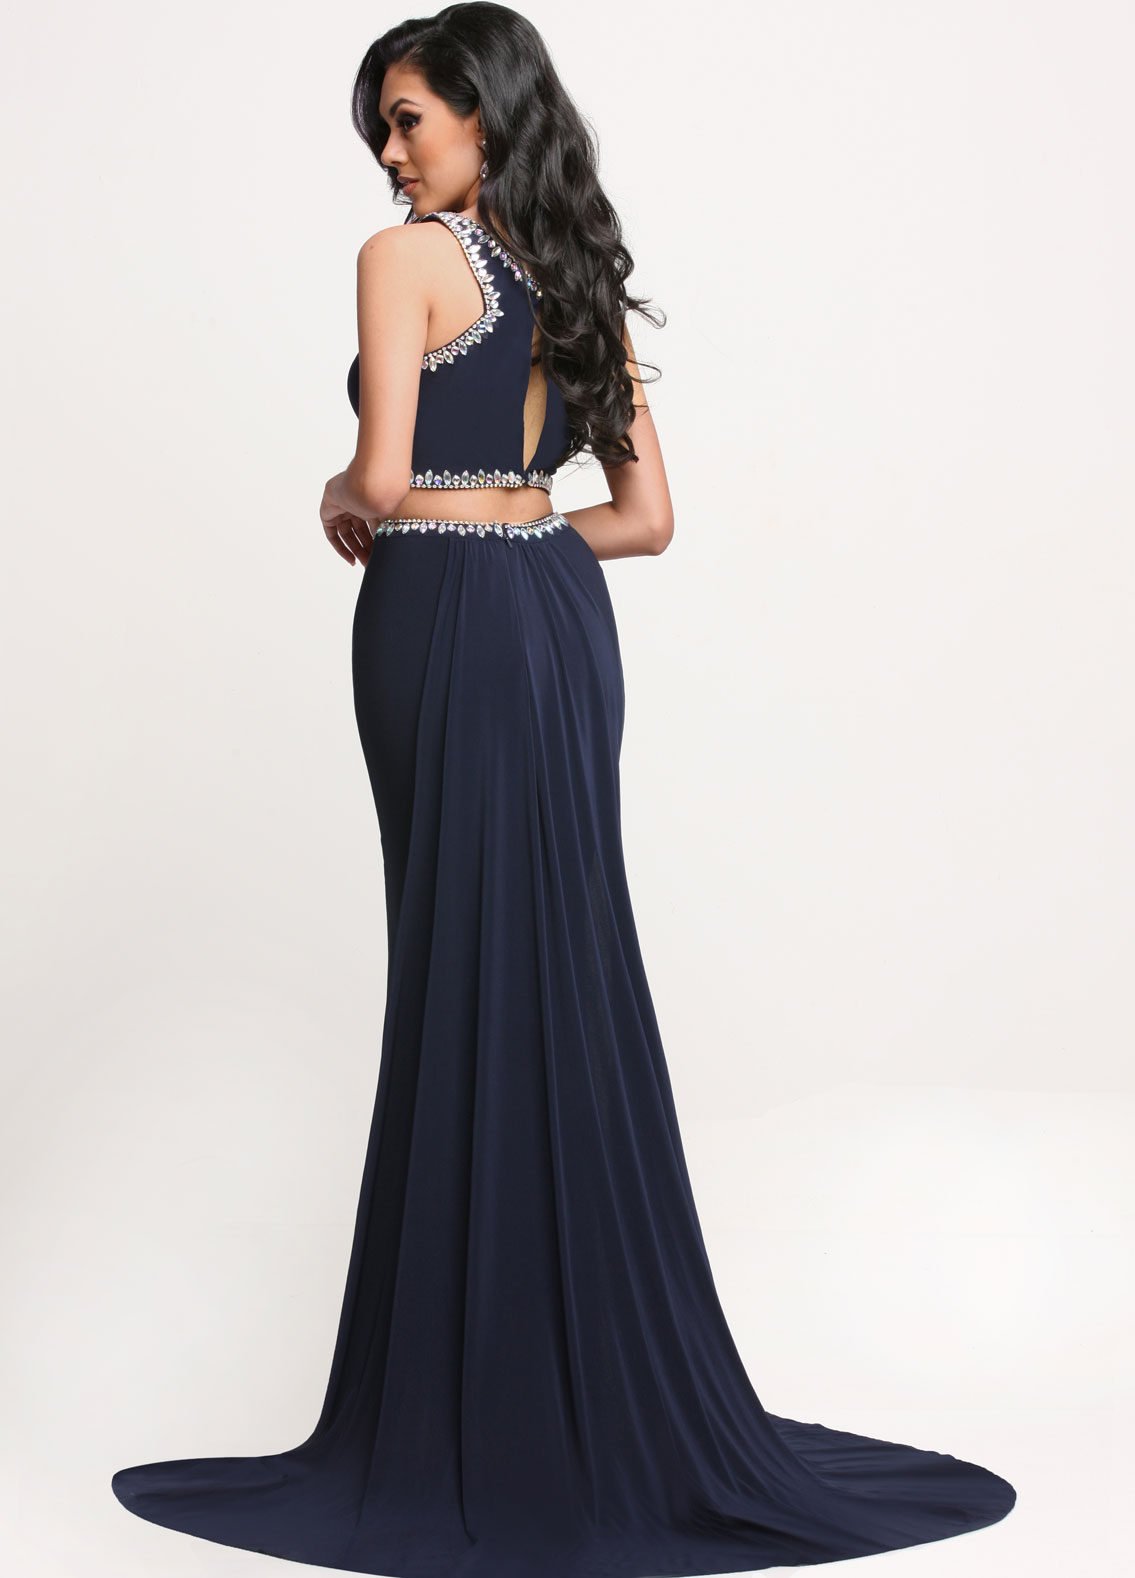 Image showing back view of style #71659